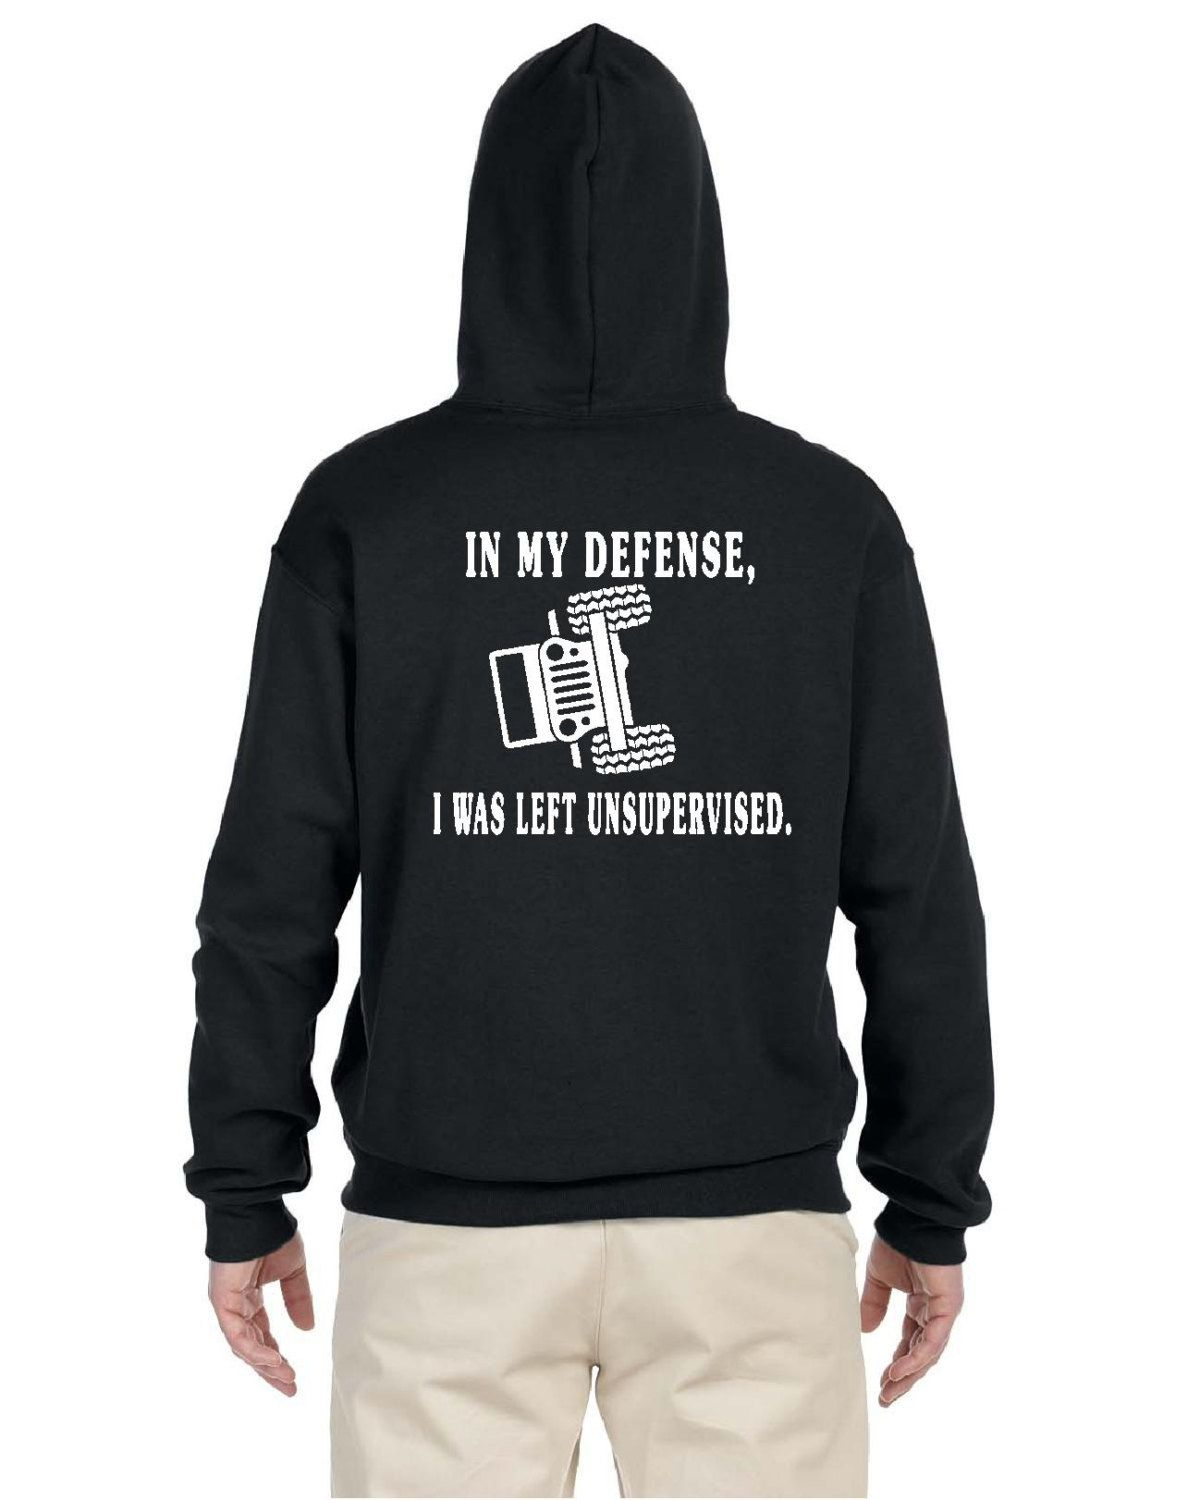 b53b36559 In My defense i was left unsupervised jeep Hoodie pullover jeep hoodie  pullover hooded sweatshirt jeep sweatshirt by DetroitSpeedFactory on Etsy